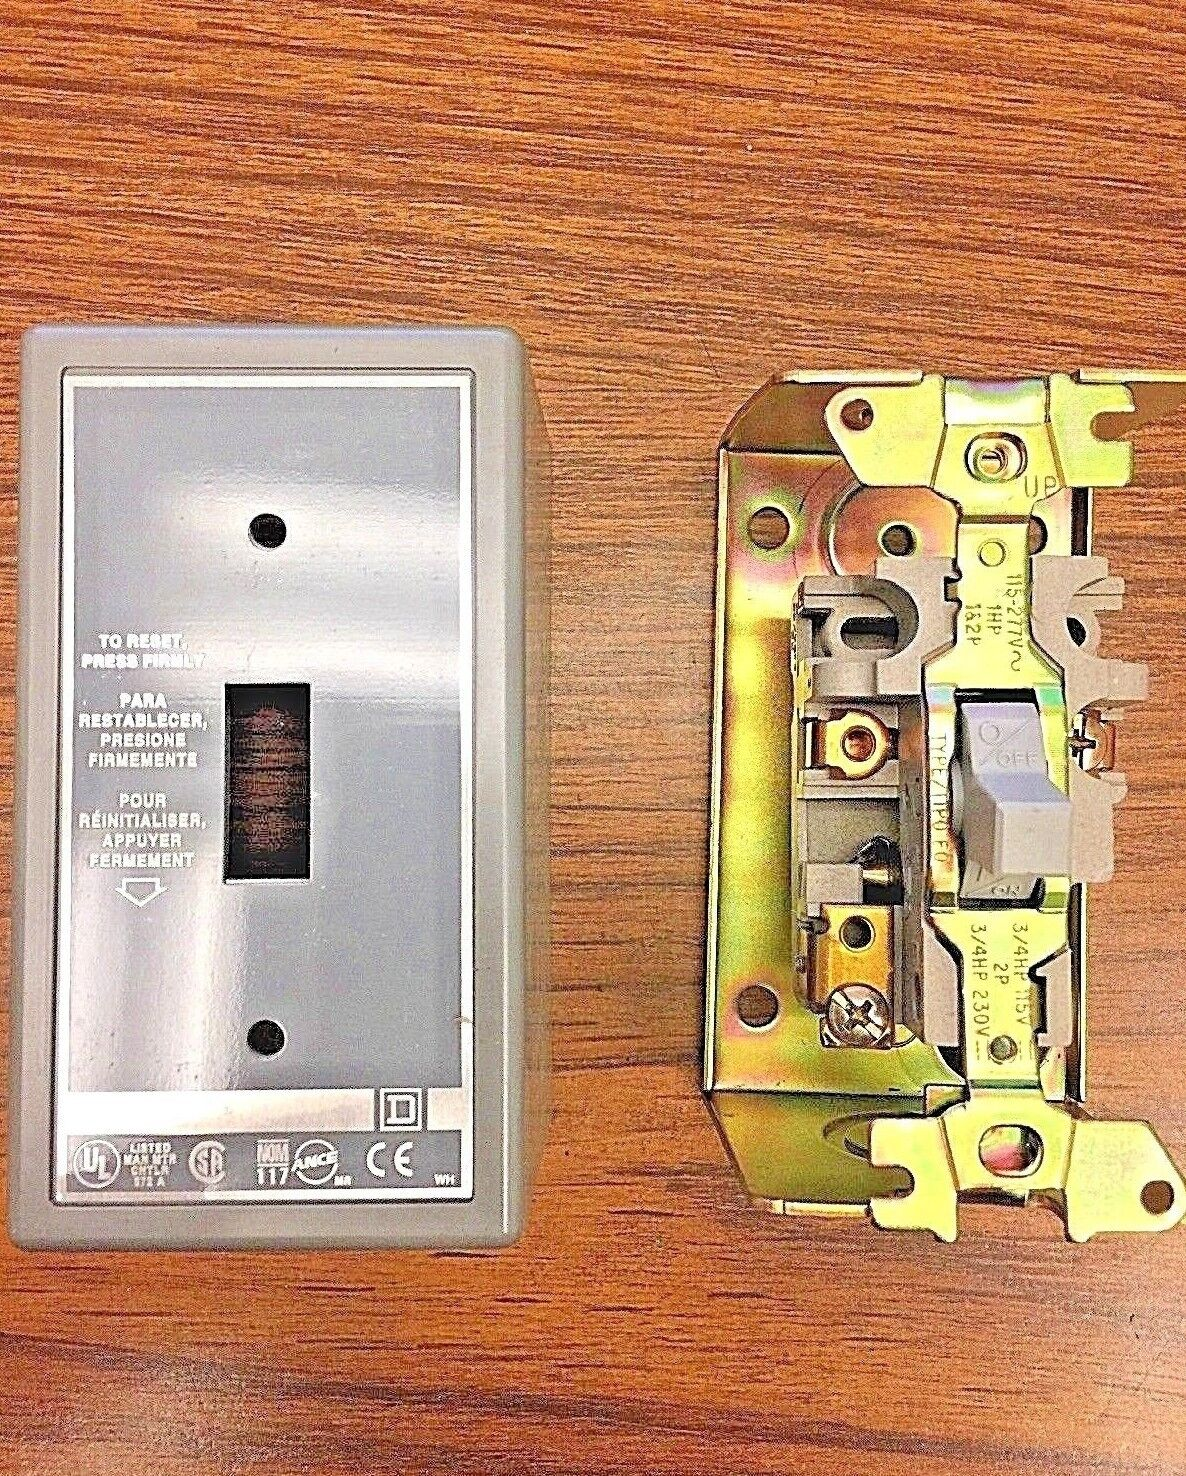 Square D 2510FG2 Industrial Control System for sale online